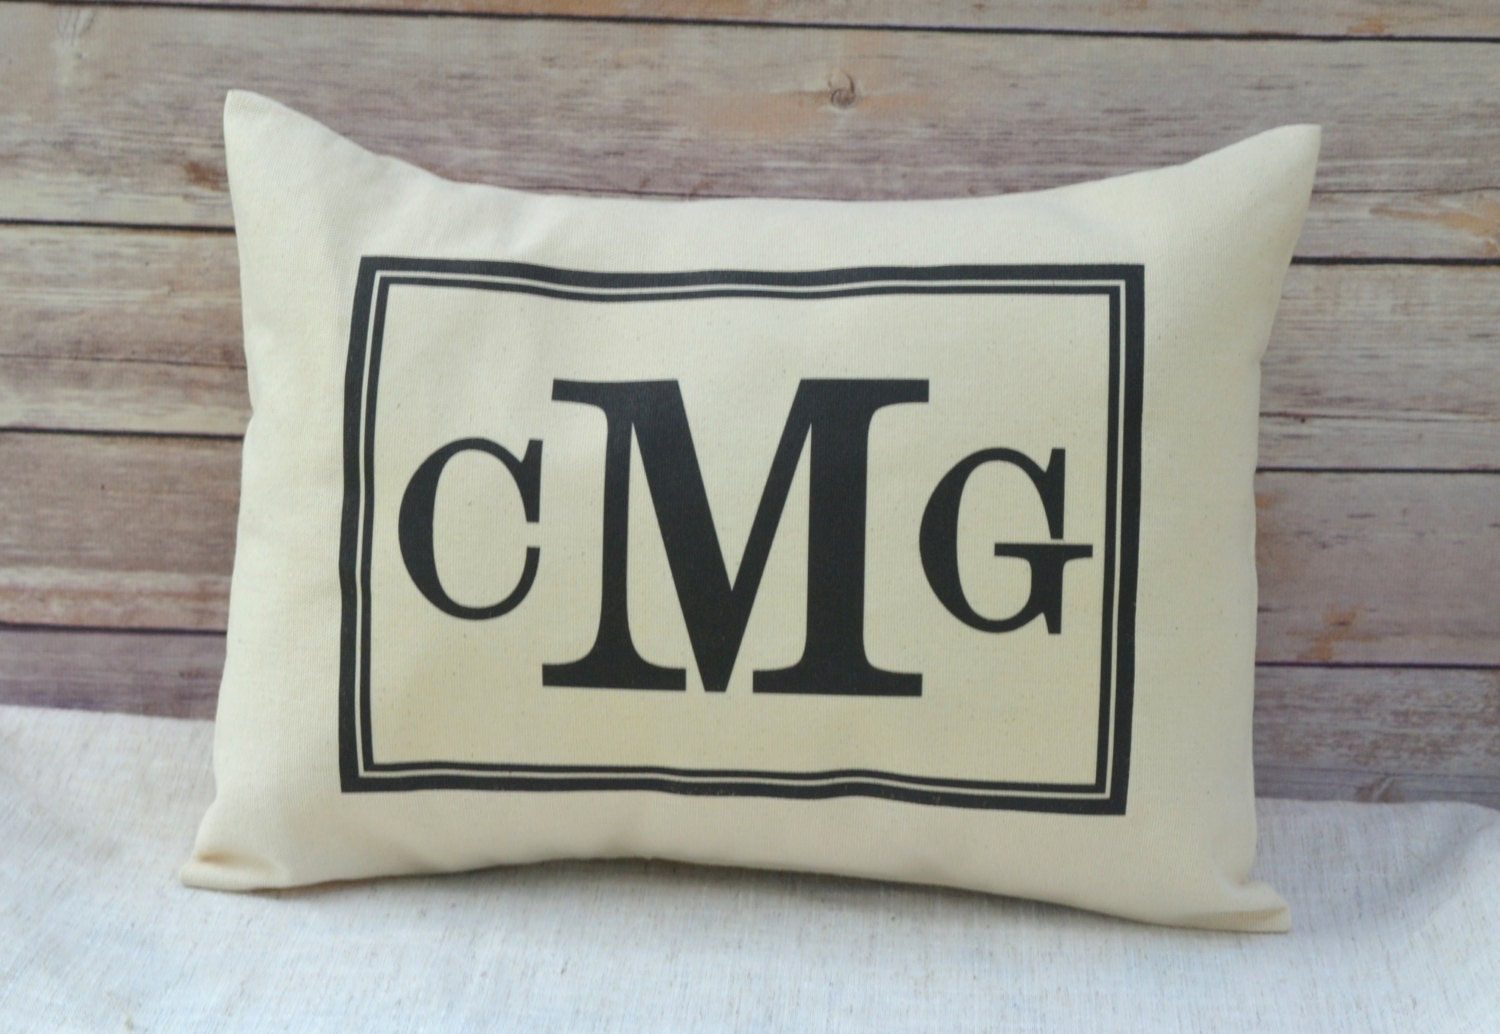 Unique Wedding Gifts For Second Marriage: Personalized Gift Black Monogram Pillow Second Marriage